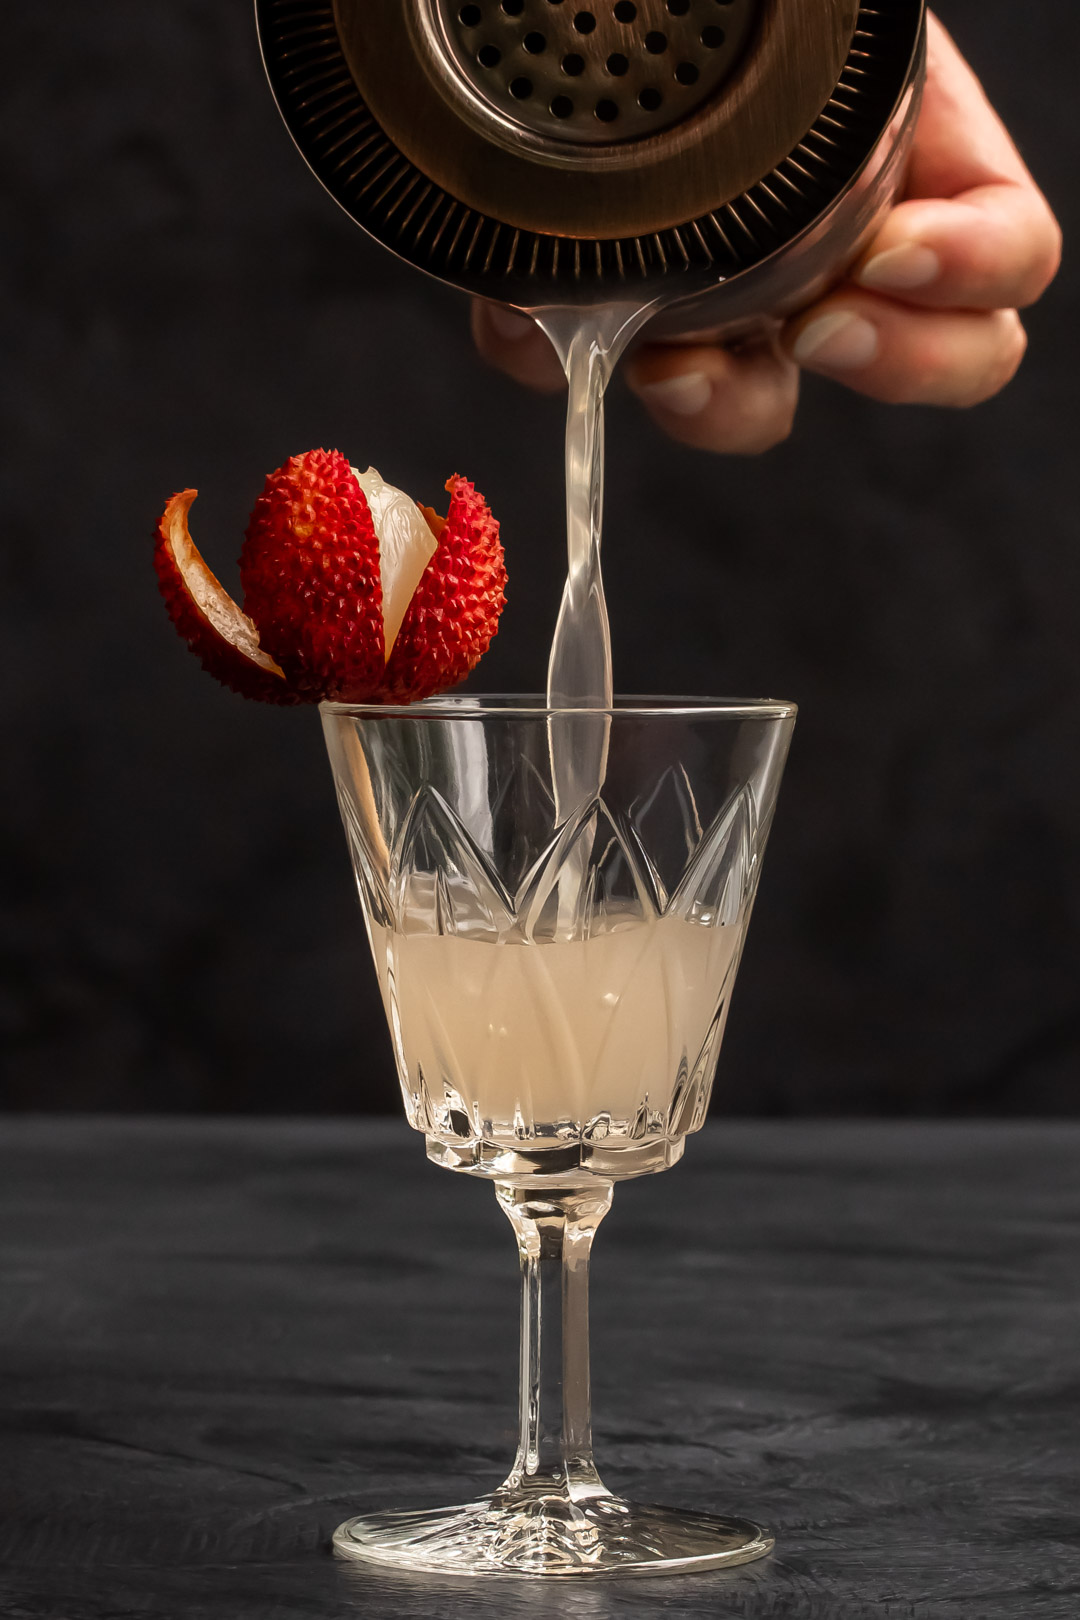 more pouring lychee reviver with lychee garnish